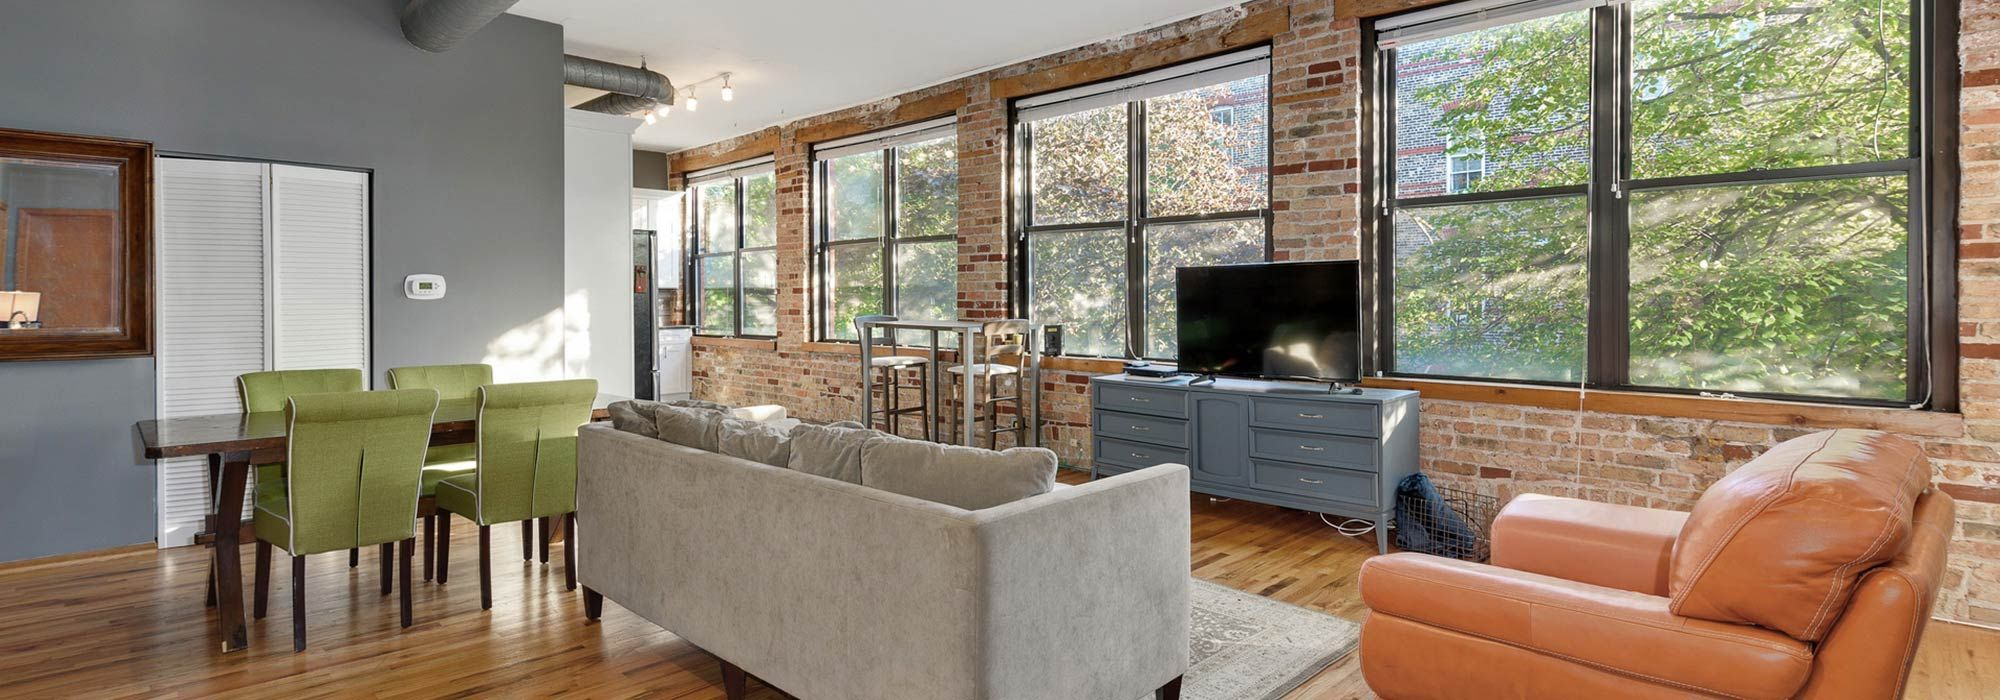 South Facing Windows Let In Plenty Of Light In This 2 Bedroom Loft In Wicker Park With Exposed East Village Apartments Loft Apartment Industrial Loft Apartment